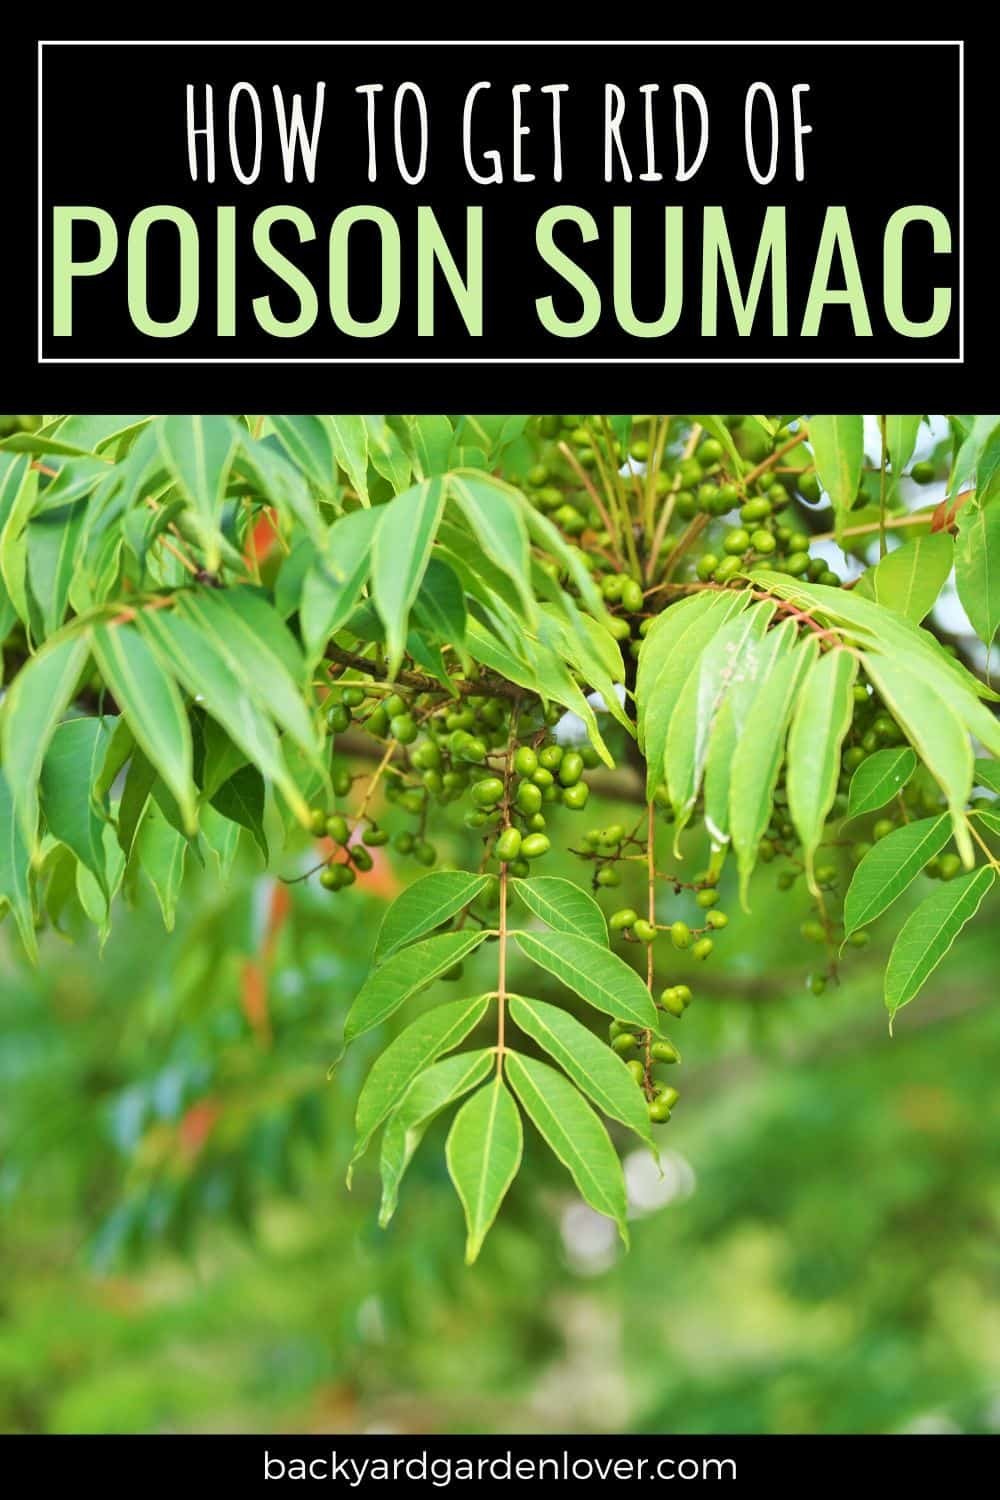 Poison sumac - how to get rid of it for good